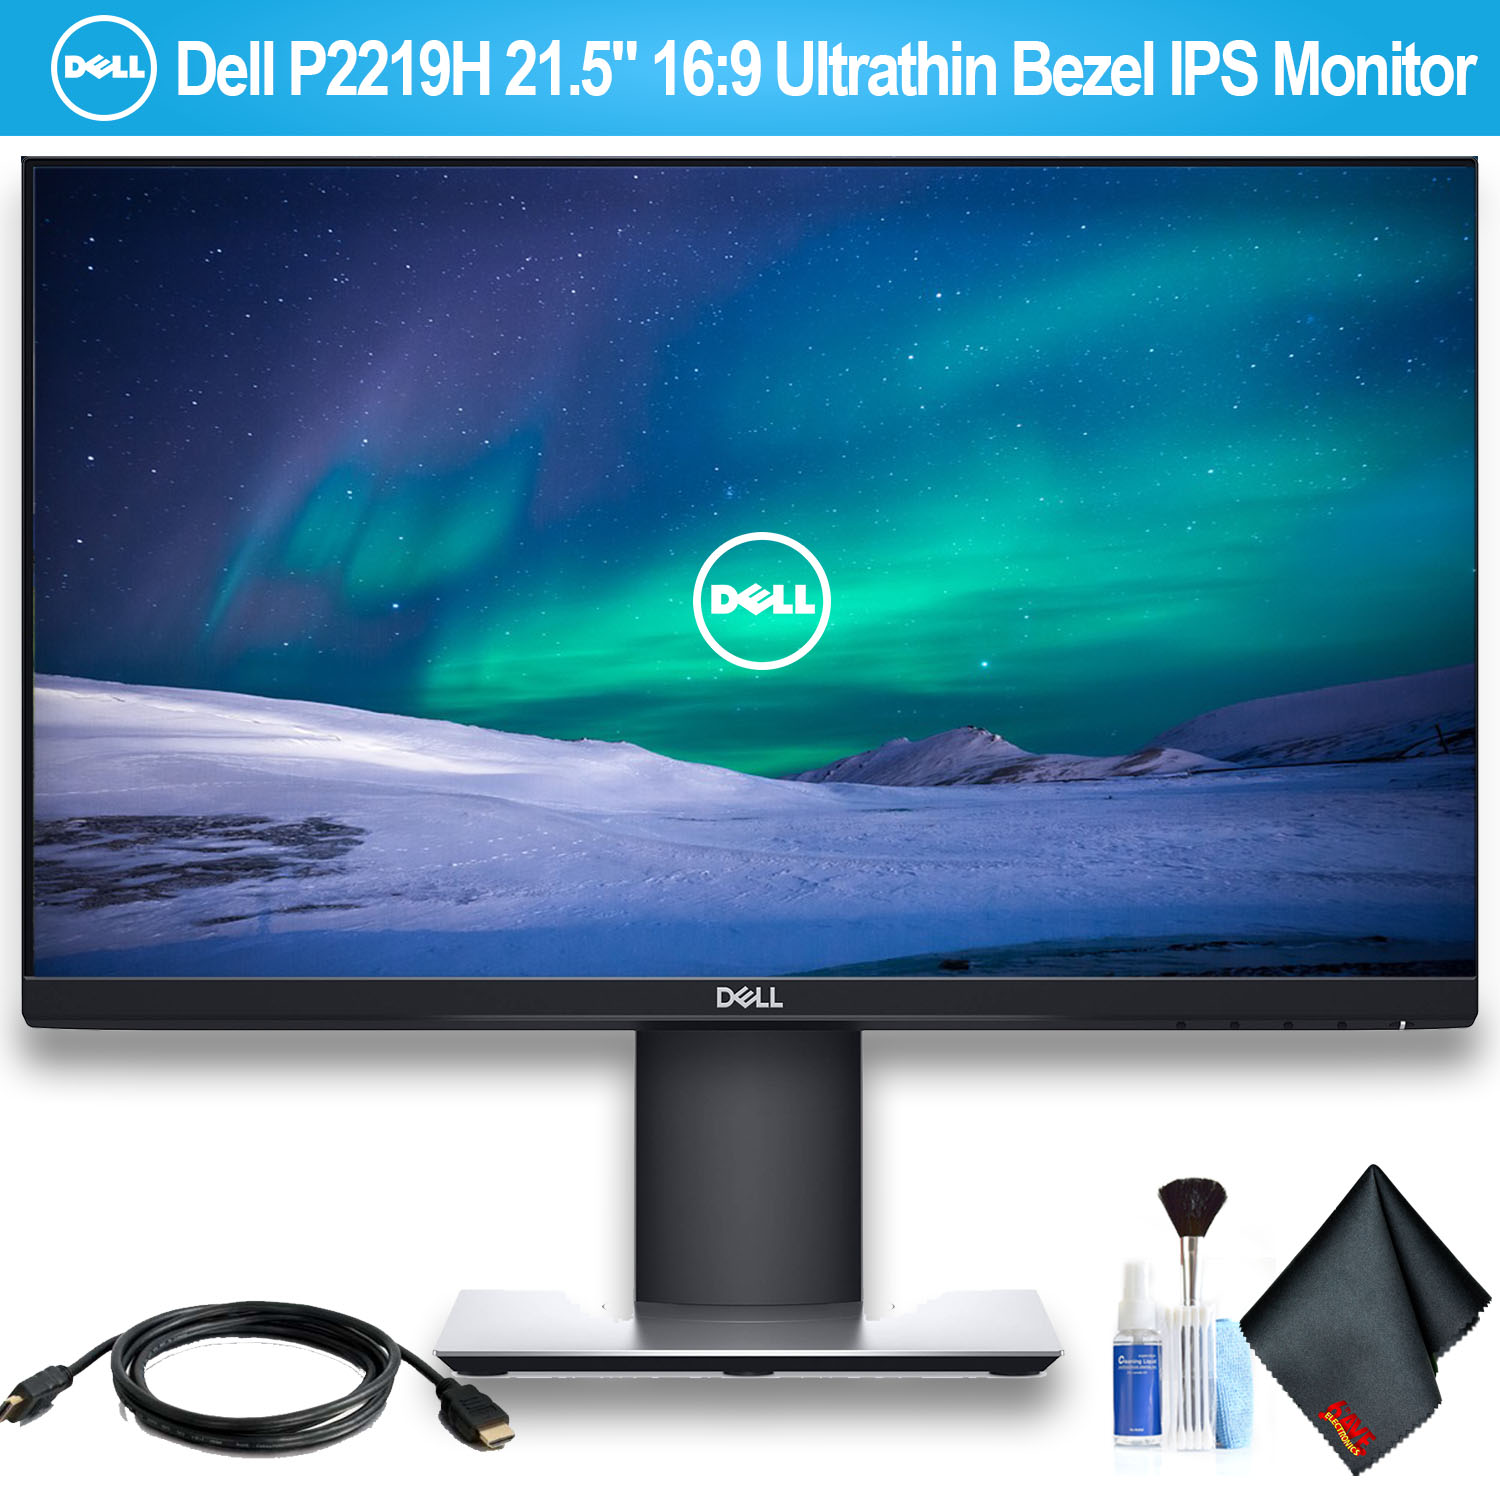 """Dell 21.5"""" 16:9 Ultrathin Bezel IPS Monitor With HDMI Cable"""